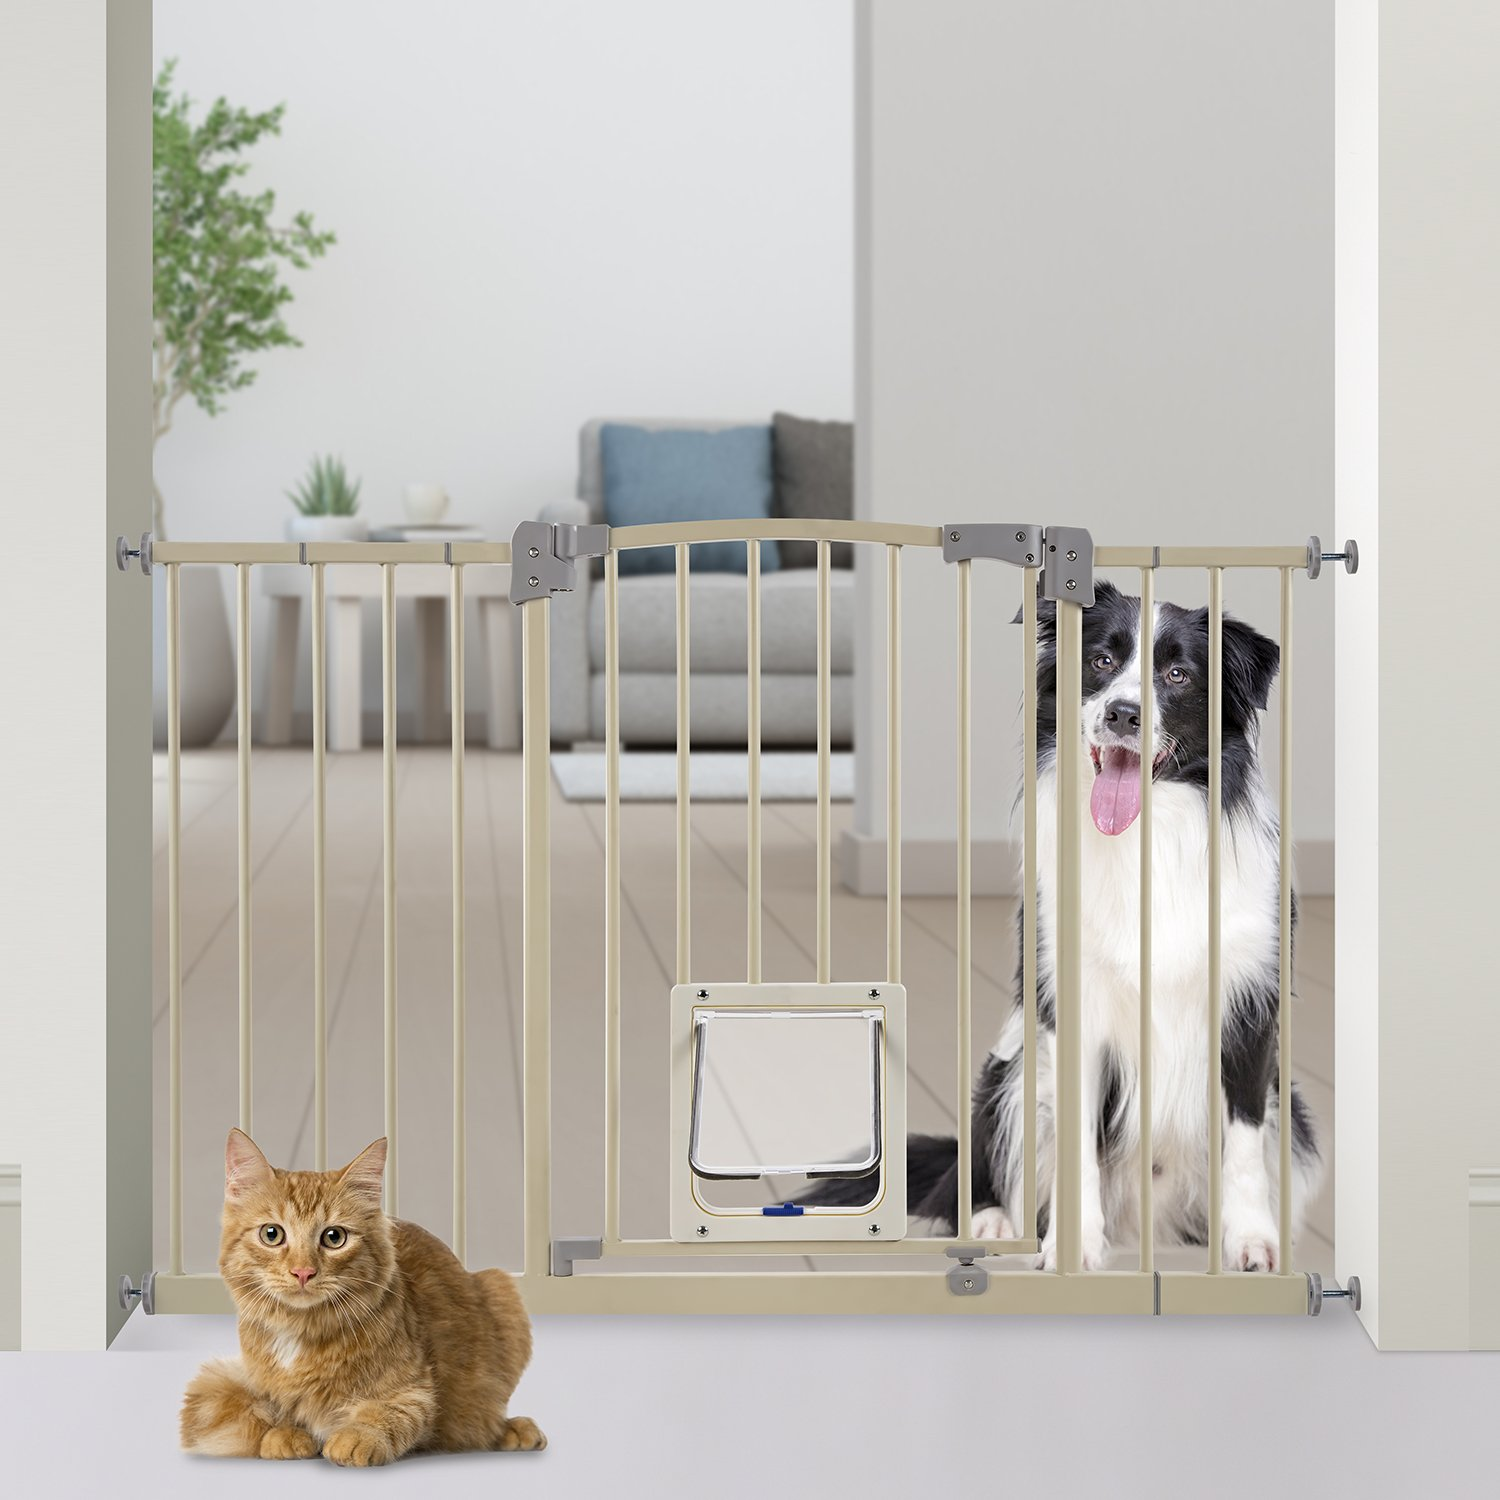 Paws & Pals Dog Gate Multifunctional Indoor Metal Baby Barrier - Adjustable Tall-Wide Fence for House Doorway with Lockable Pet Door Flap- 53'' Max Extendable by Paws & Pals (Image #4)